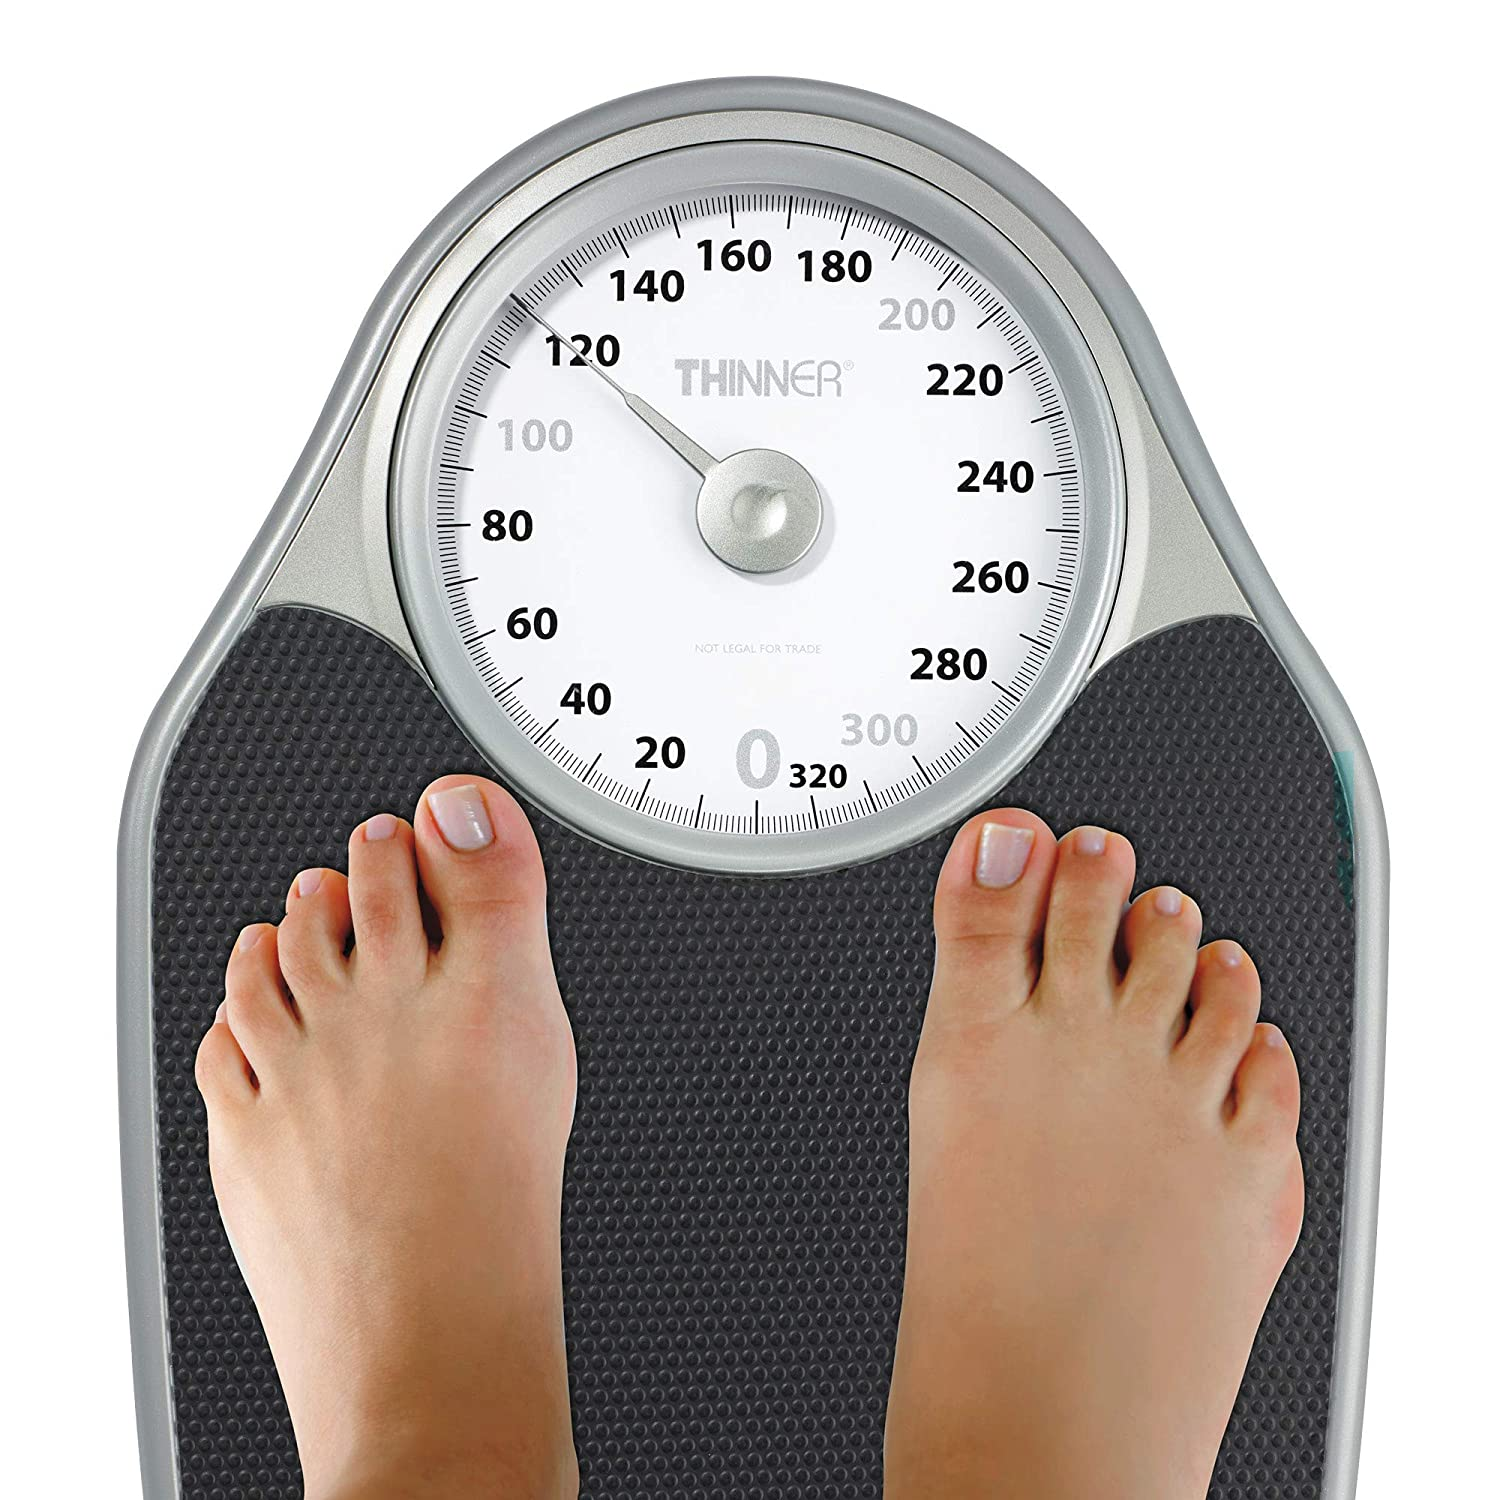 1 count Analog Bath Scale Measures Weight Up To 330 Pound Thinner Scales Extra-large Dial Analog Precision Bathroom Scale